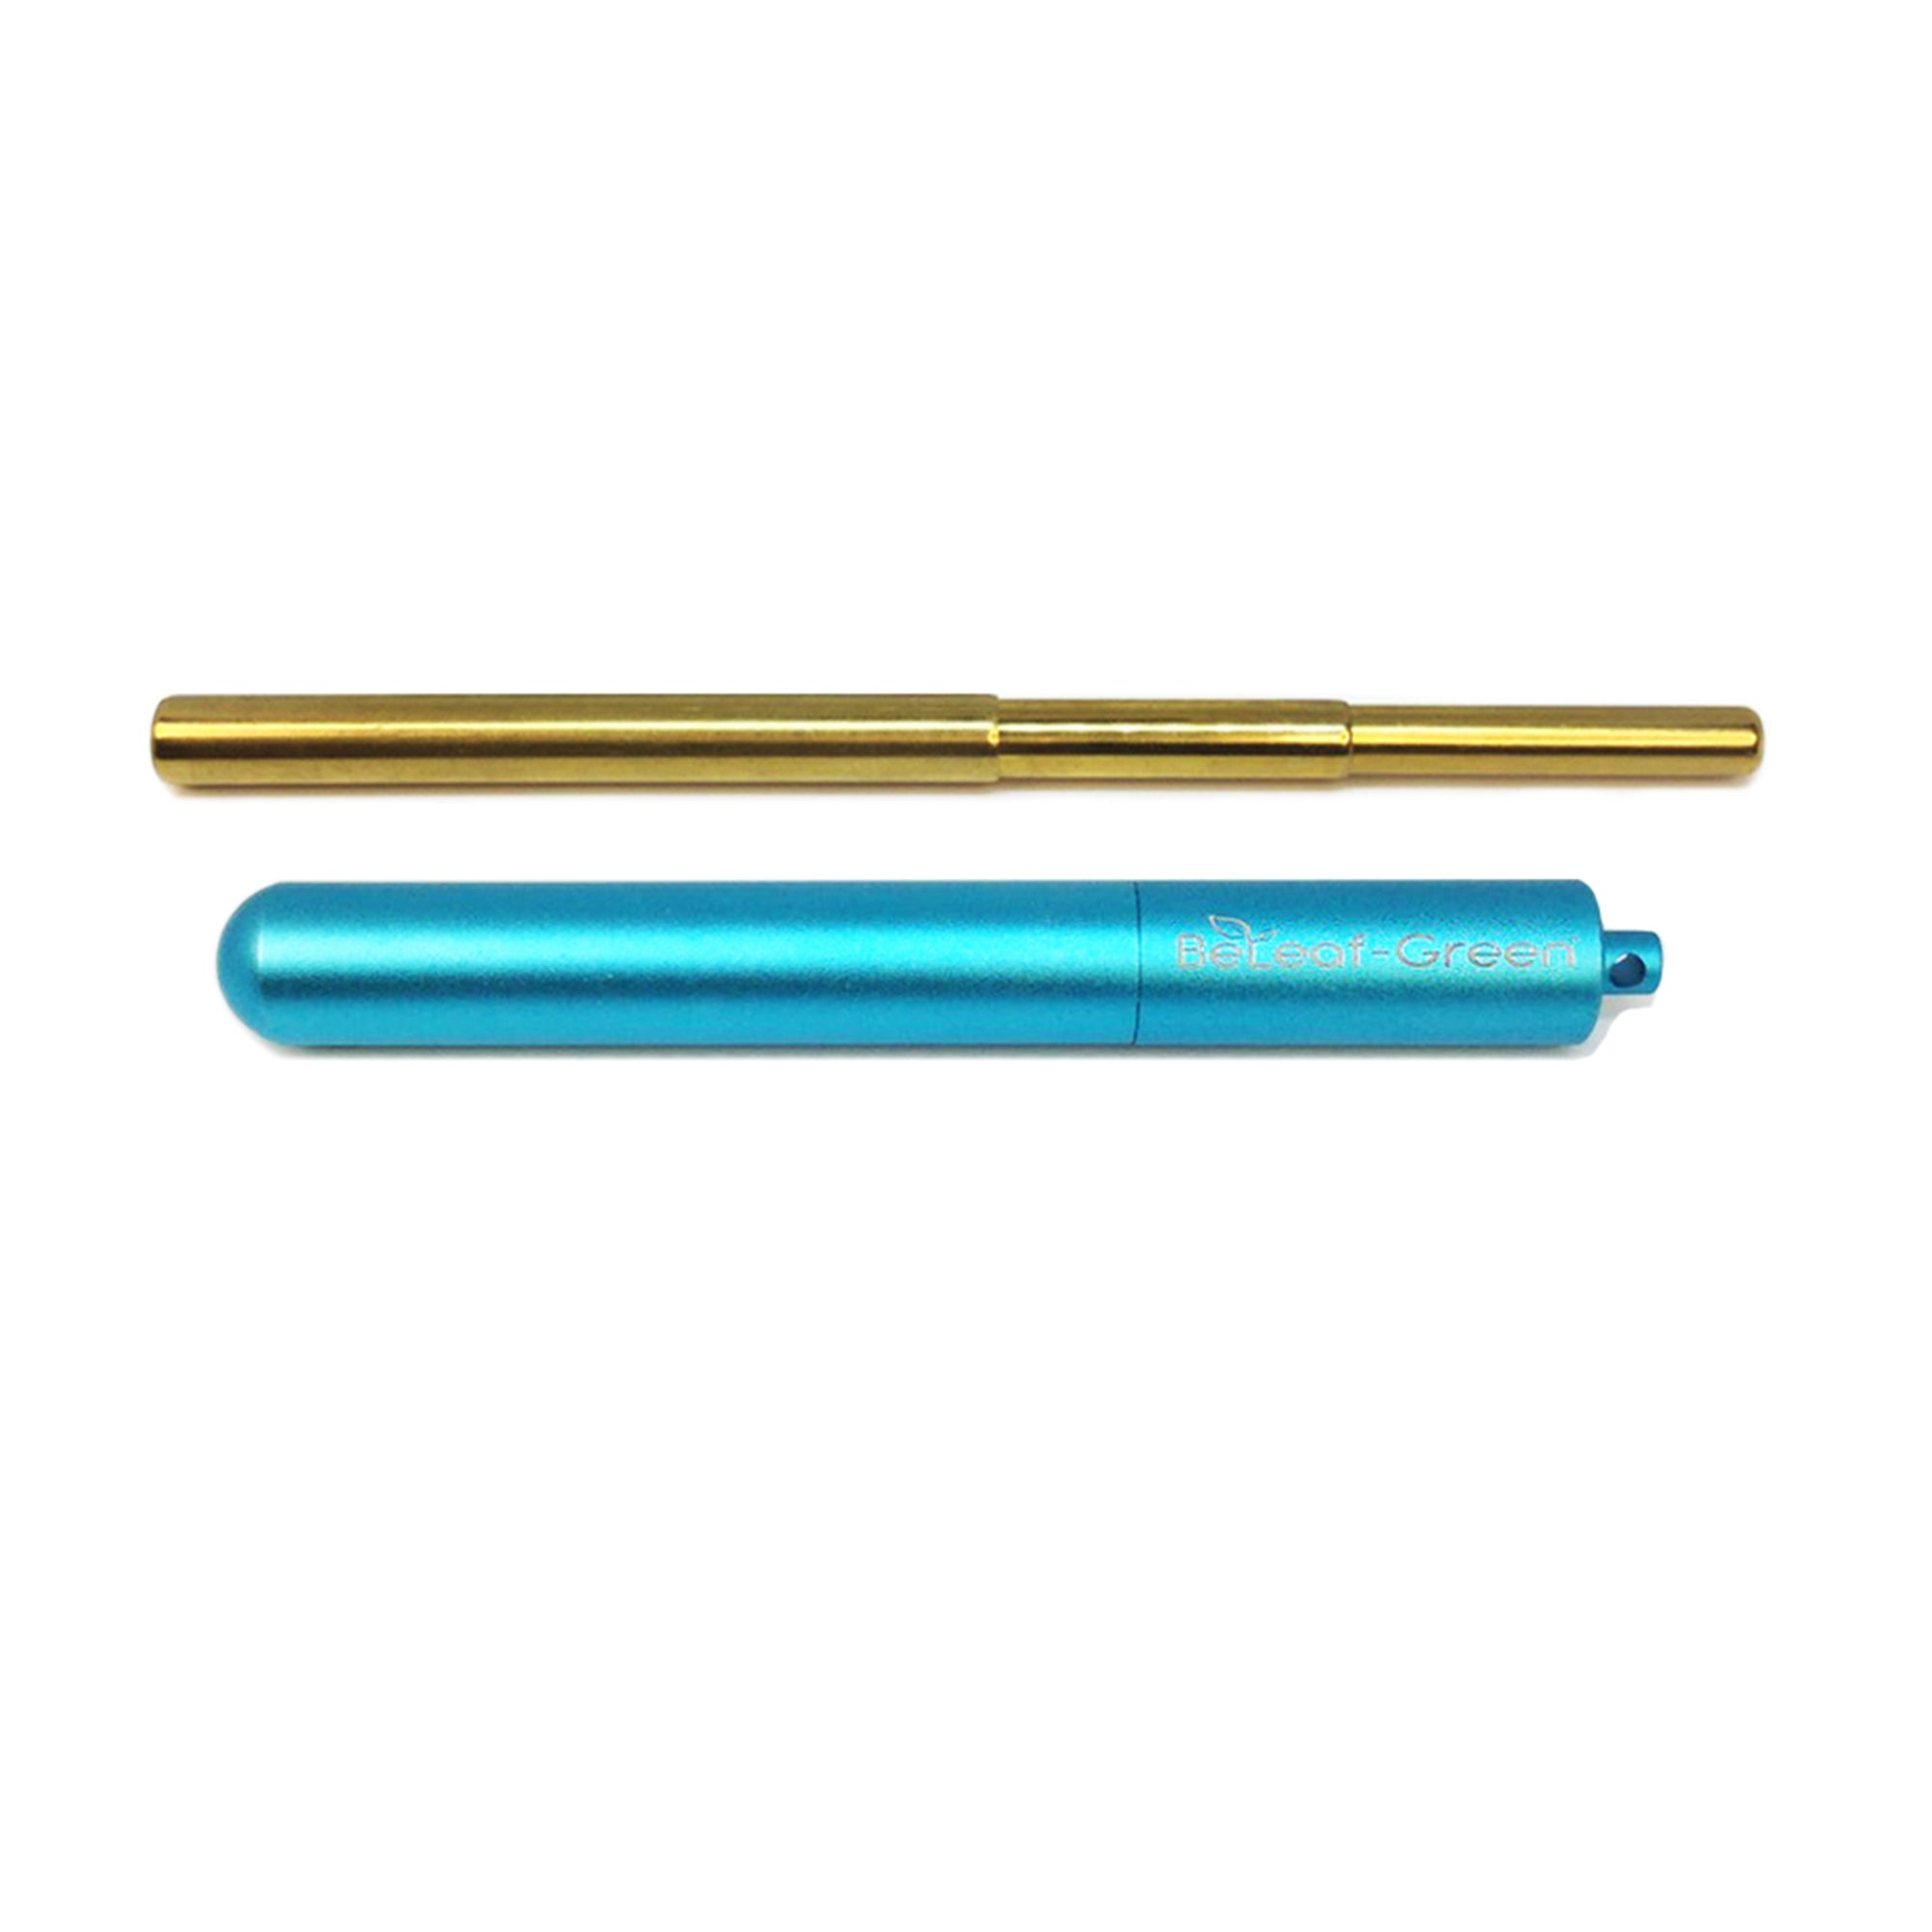 Best Reusable Telescopic Metal Straw Set with case, Seafoam, Light blue, Turquoise , Customized, Personalized with you Name BeLeaf-Green